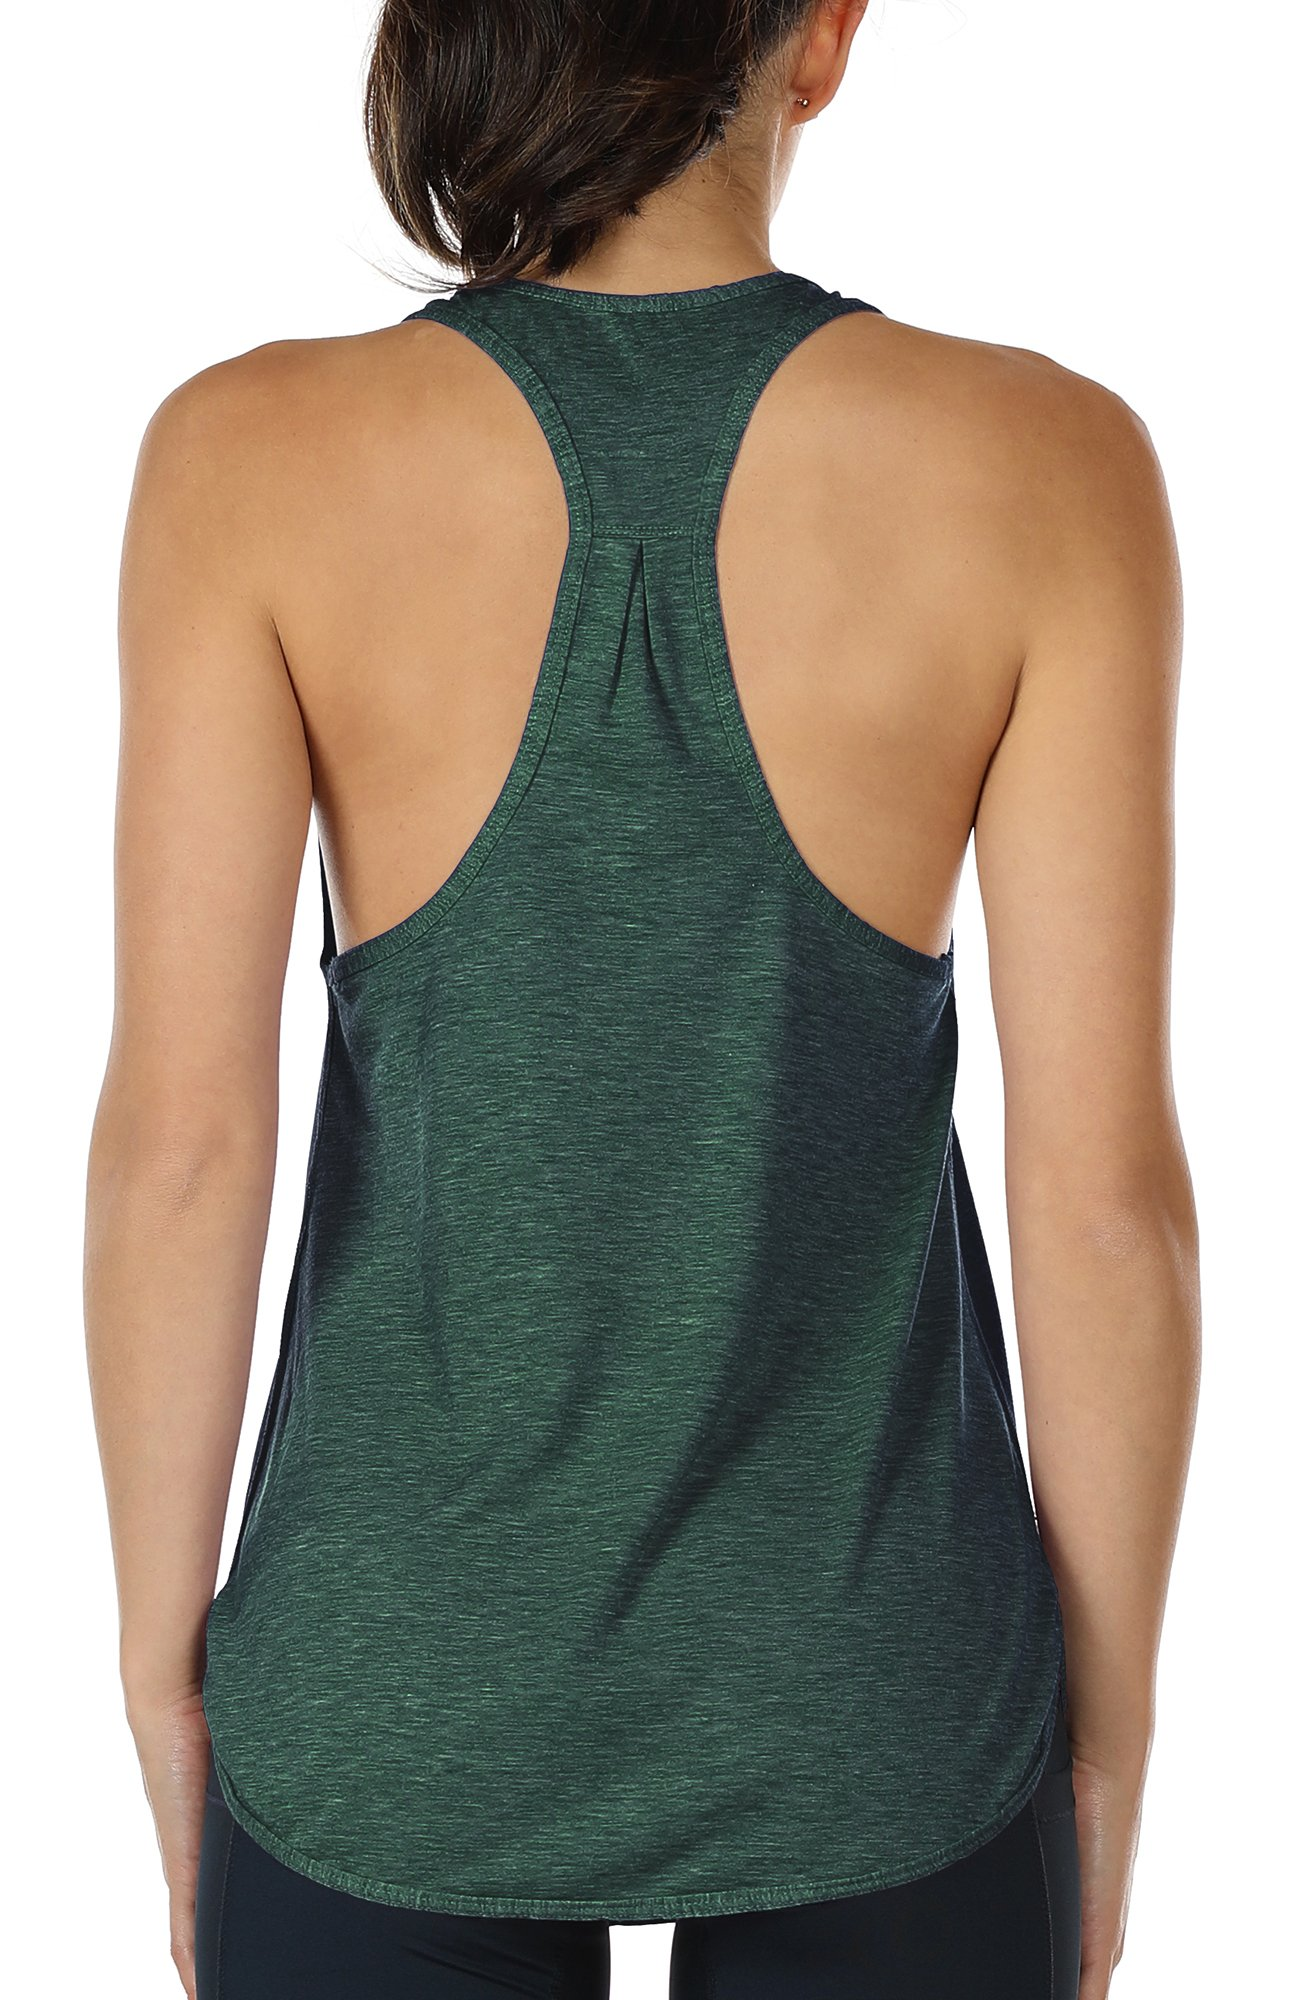 icyzone Workout Tank Tops Women - Athletic Yoga Tops, Racerback Running Tank Top (M, Army)